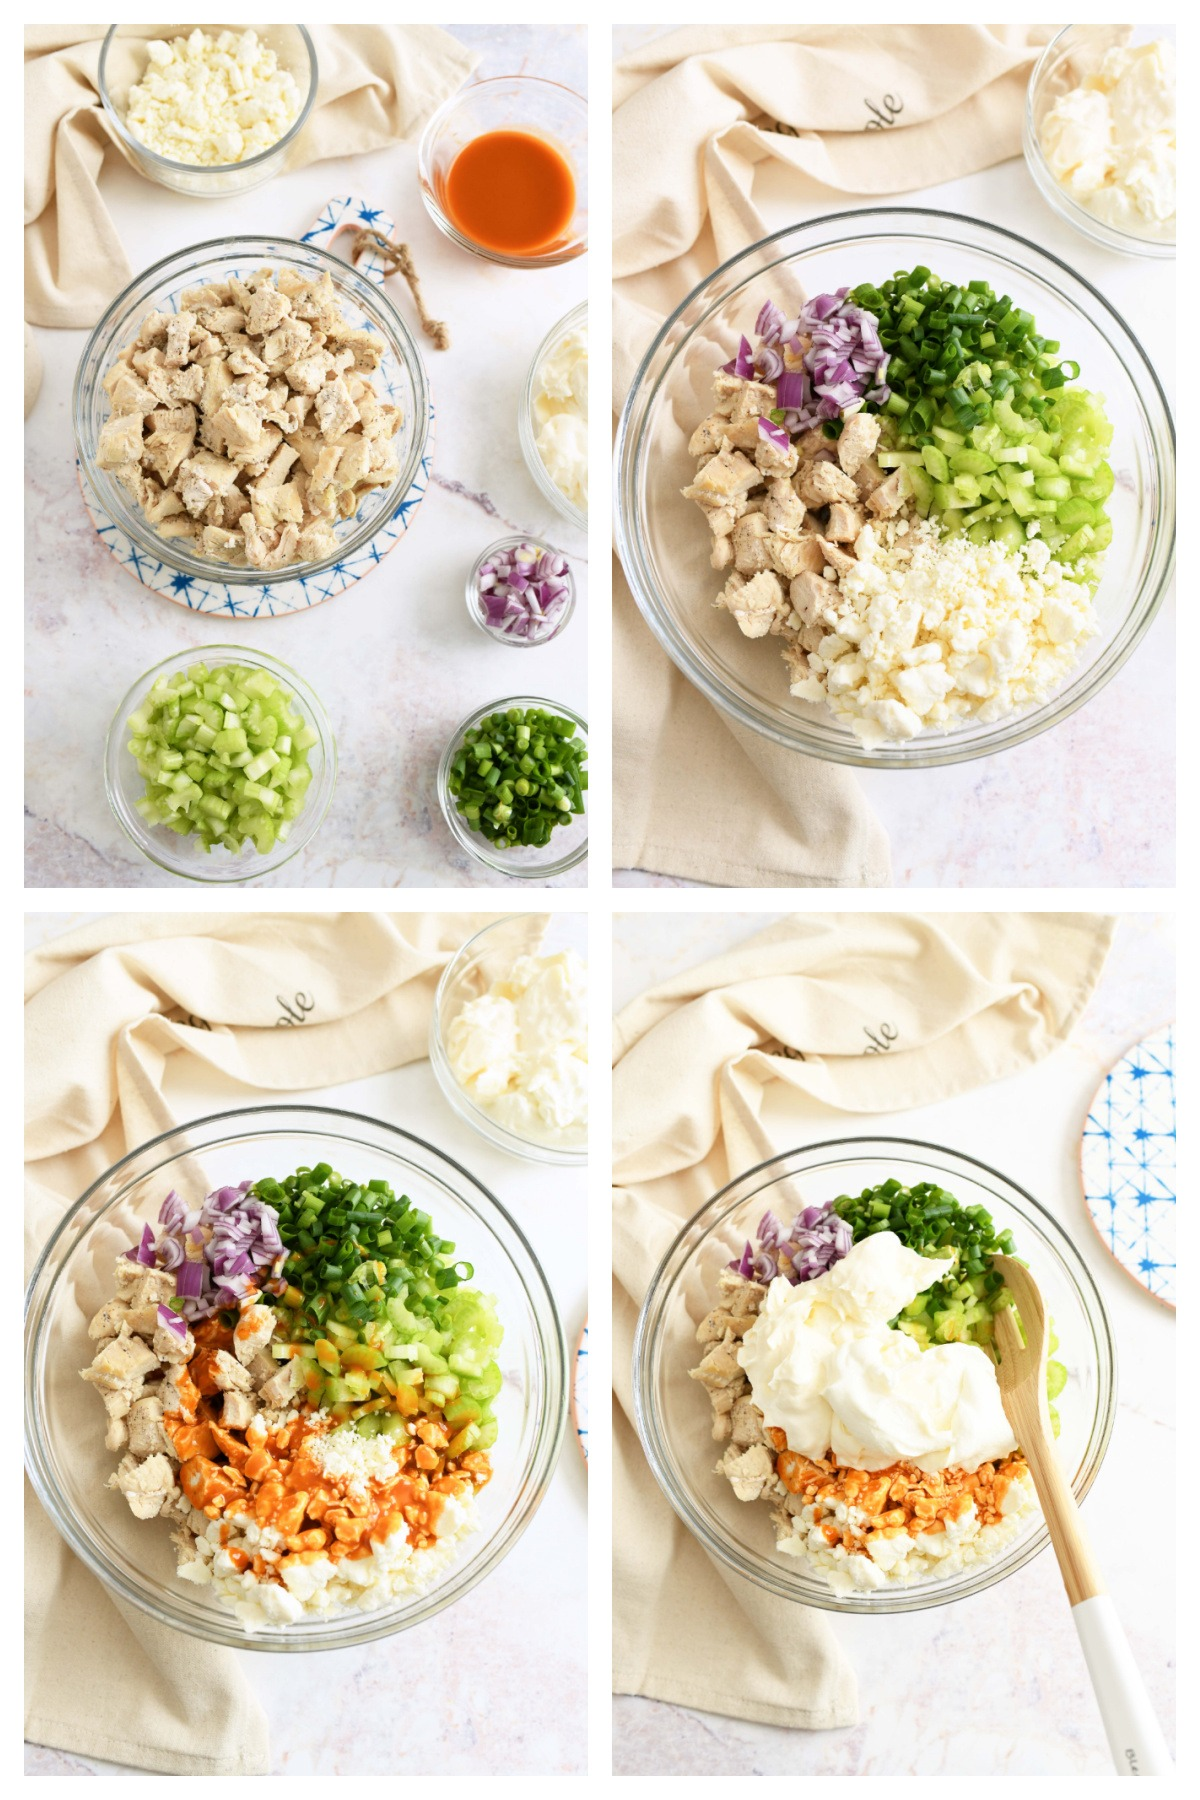 How to Make Buffalo Chicken Salad. A four image collage that showcases the steps to making buffalo chicken salad.